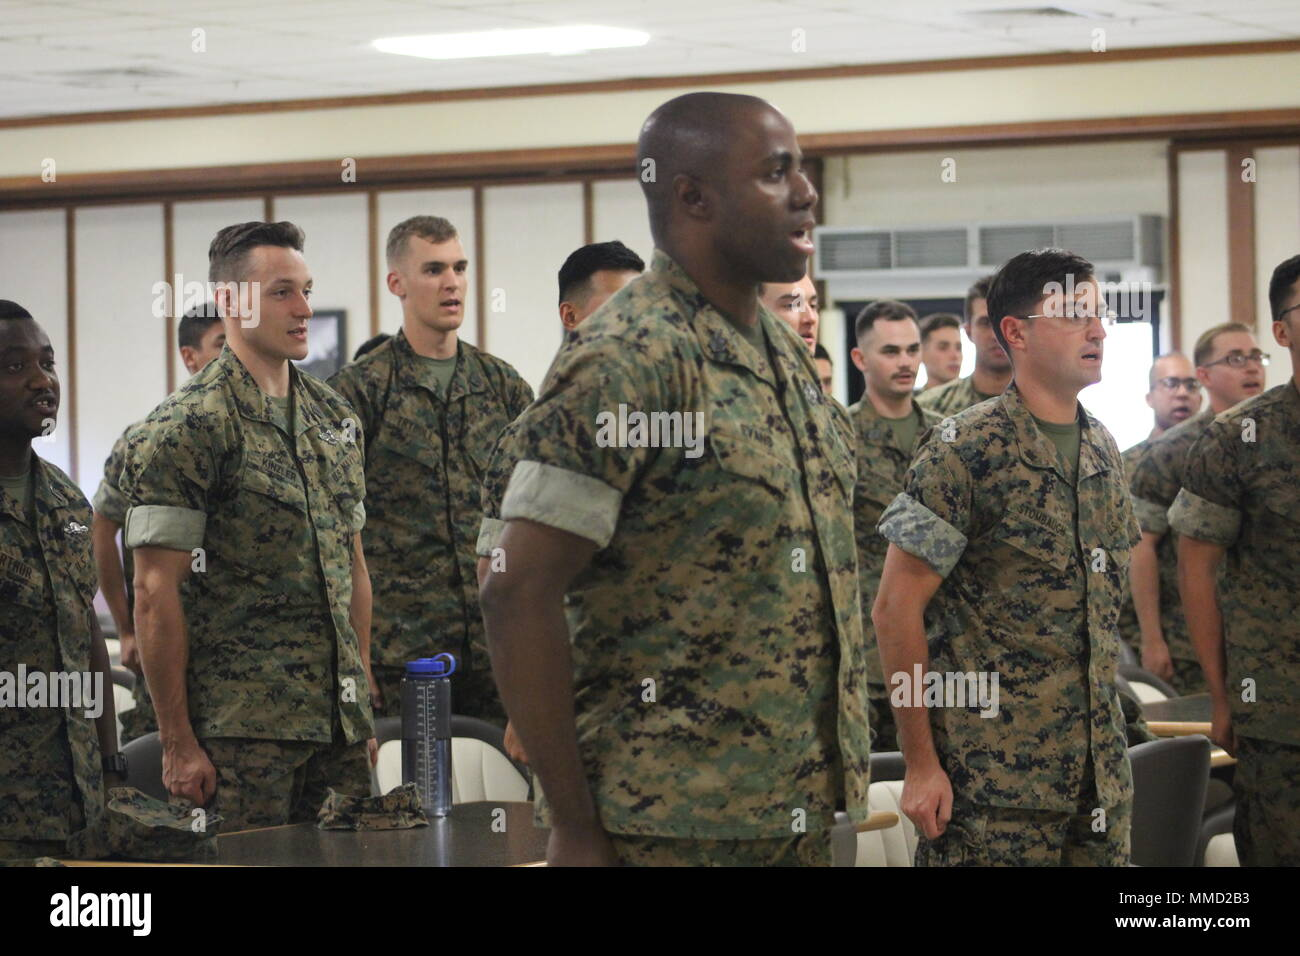 us navy sailors stand at attention for the sailors creed during a cake cutting ceremony at